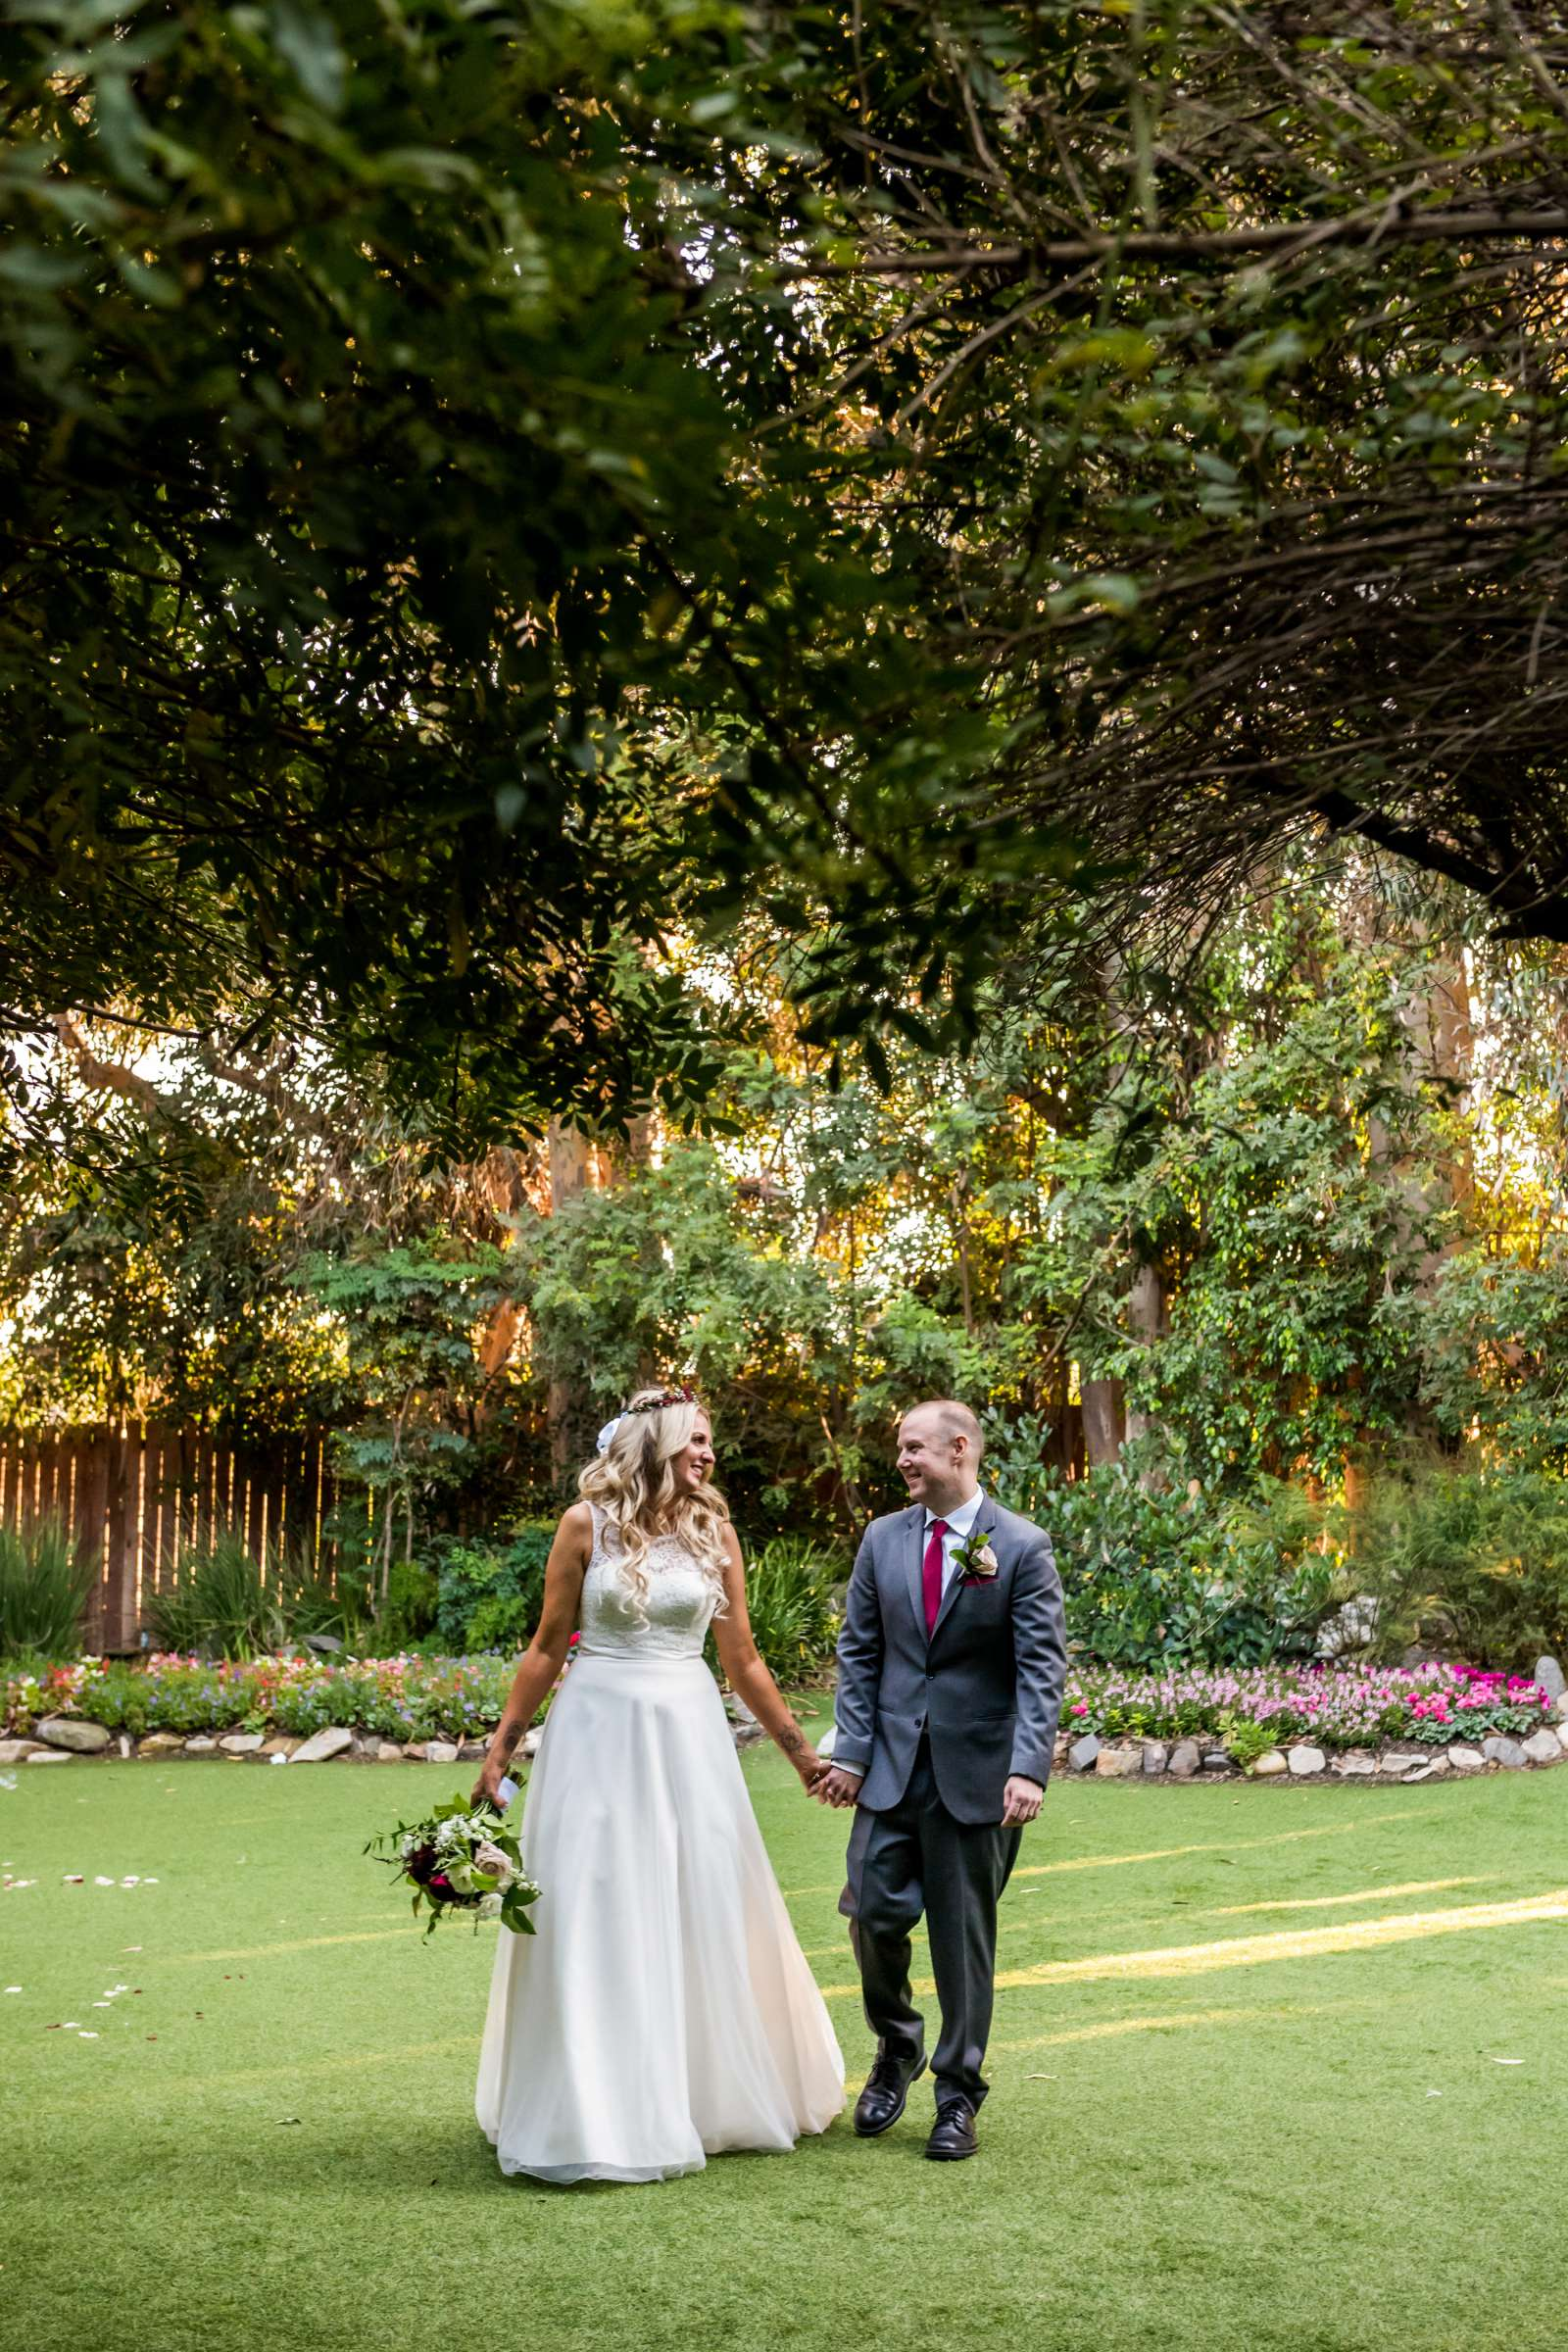 Twin Oaks House & Gardens Wedding Estate Wedding, Brittany and Sean Wedding Photo #5 by True Photography